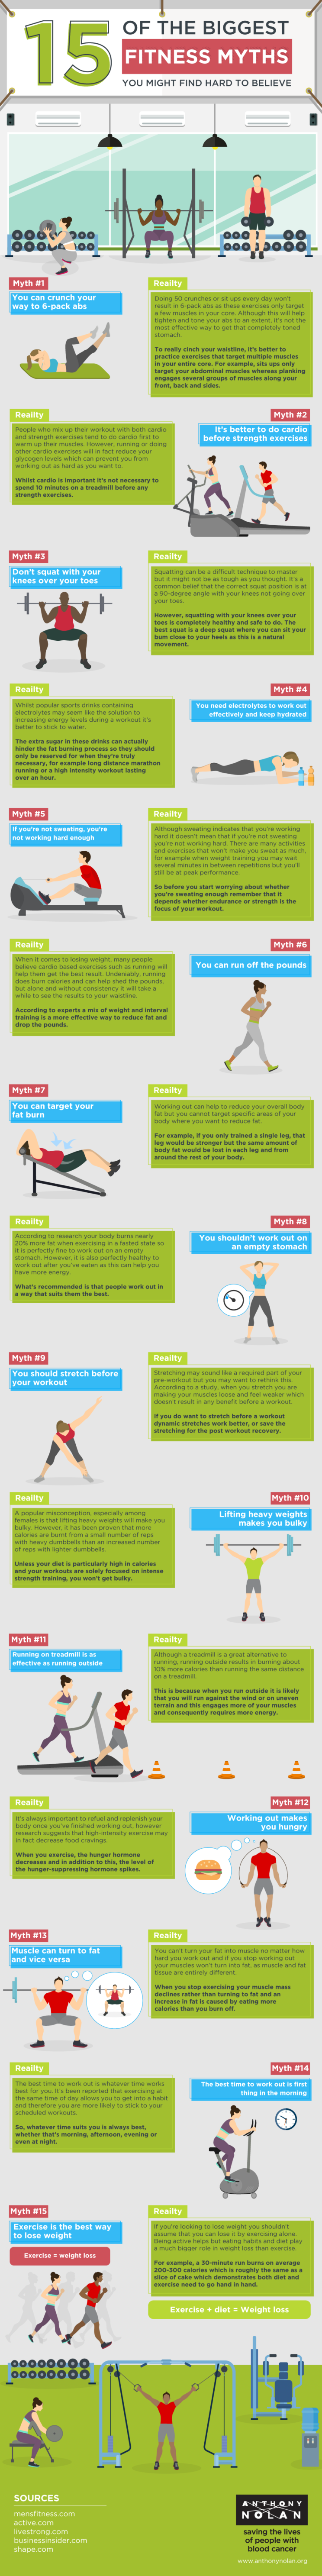 15 of the biggest fitness myths you might find hard to believe #infographic